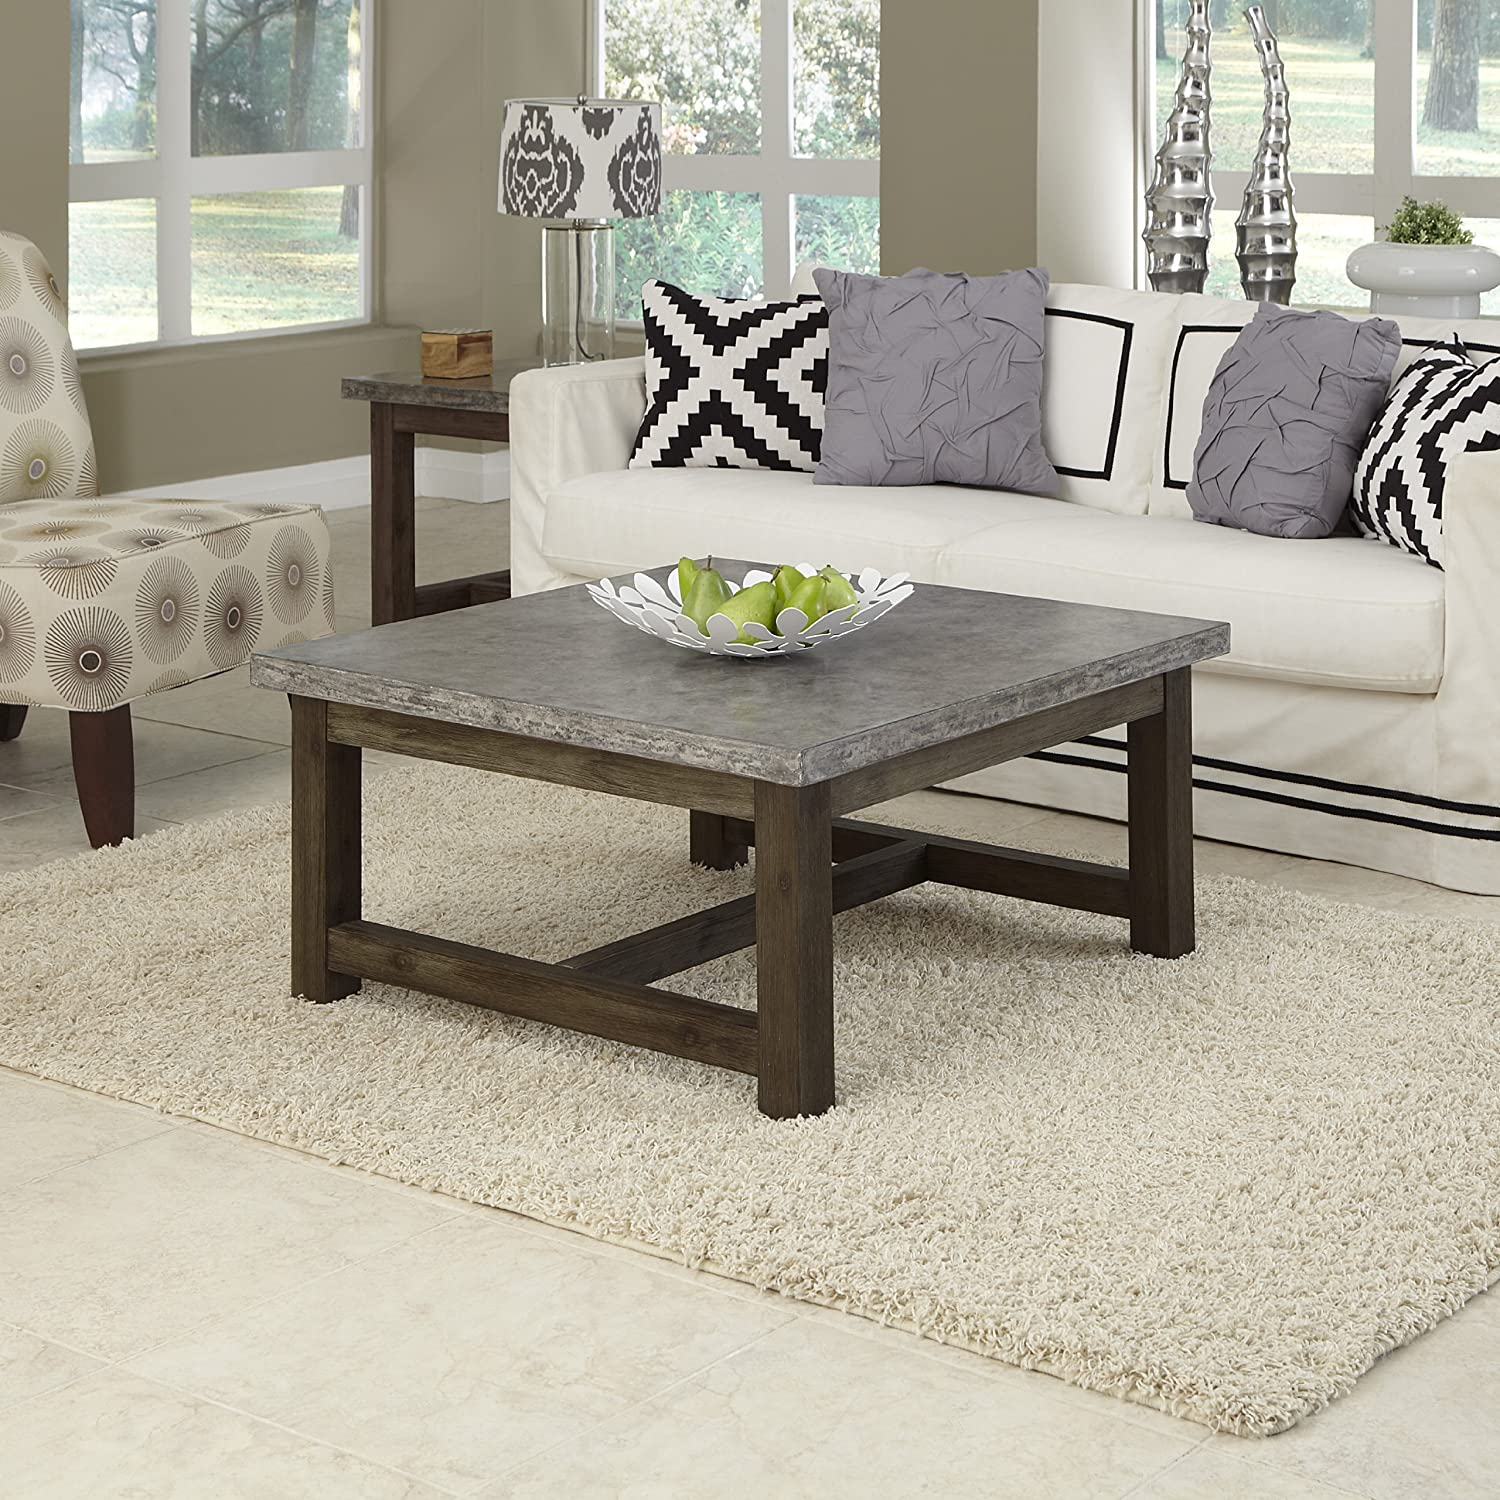 Amazon Home Styles 5133 21 Concrete Chic Square Coffee Table